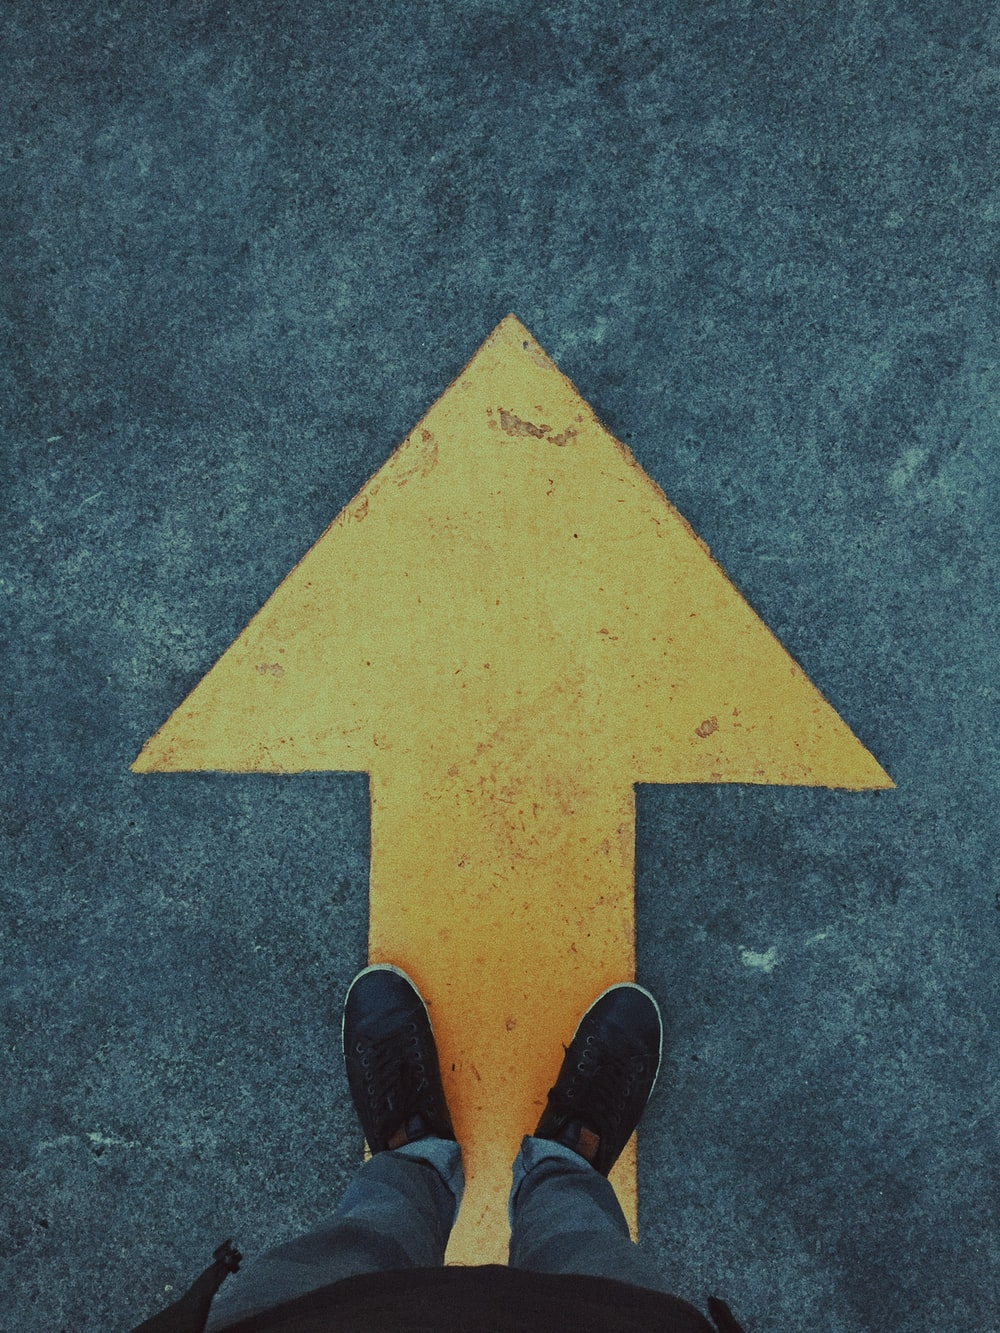 person standing on yellow arrow